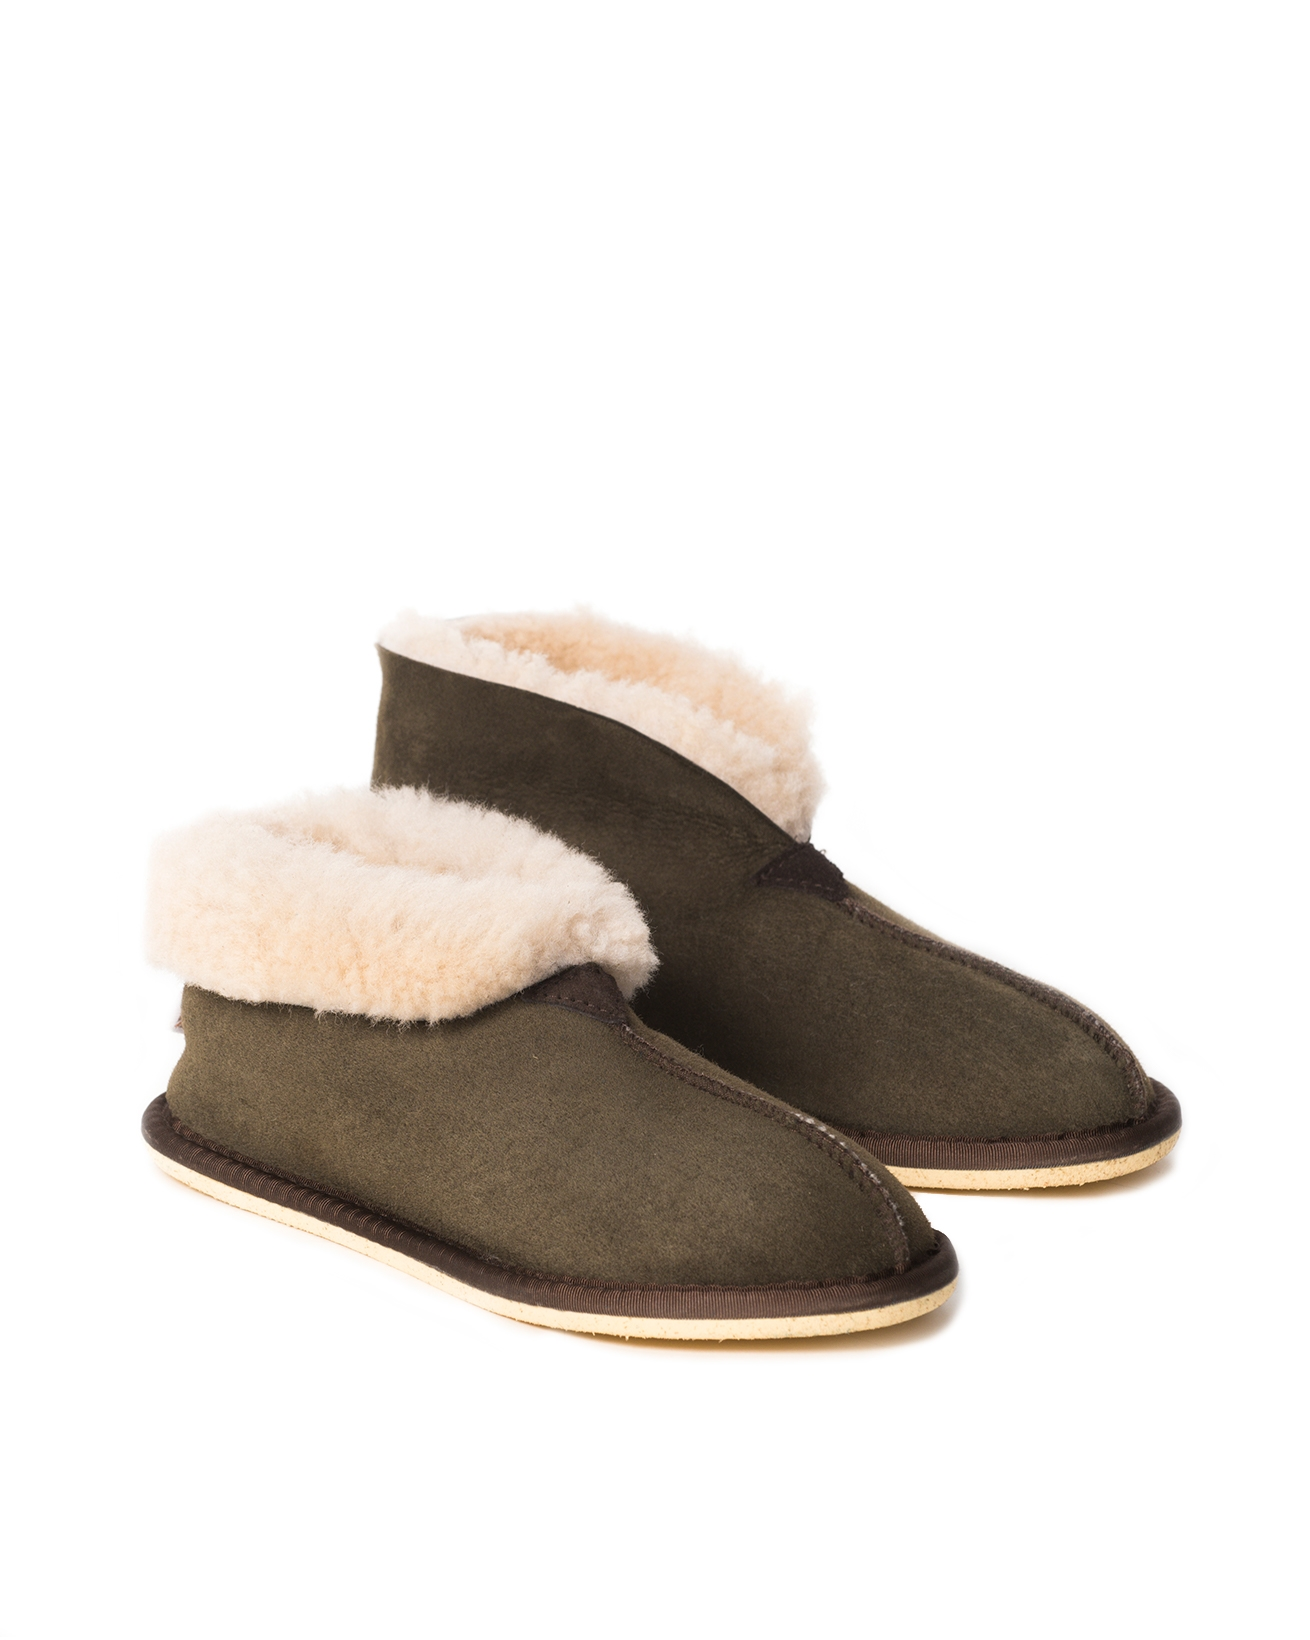 2100 sheepskin bootee slipper_moorland_pair1.jpg